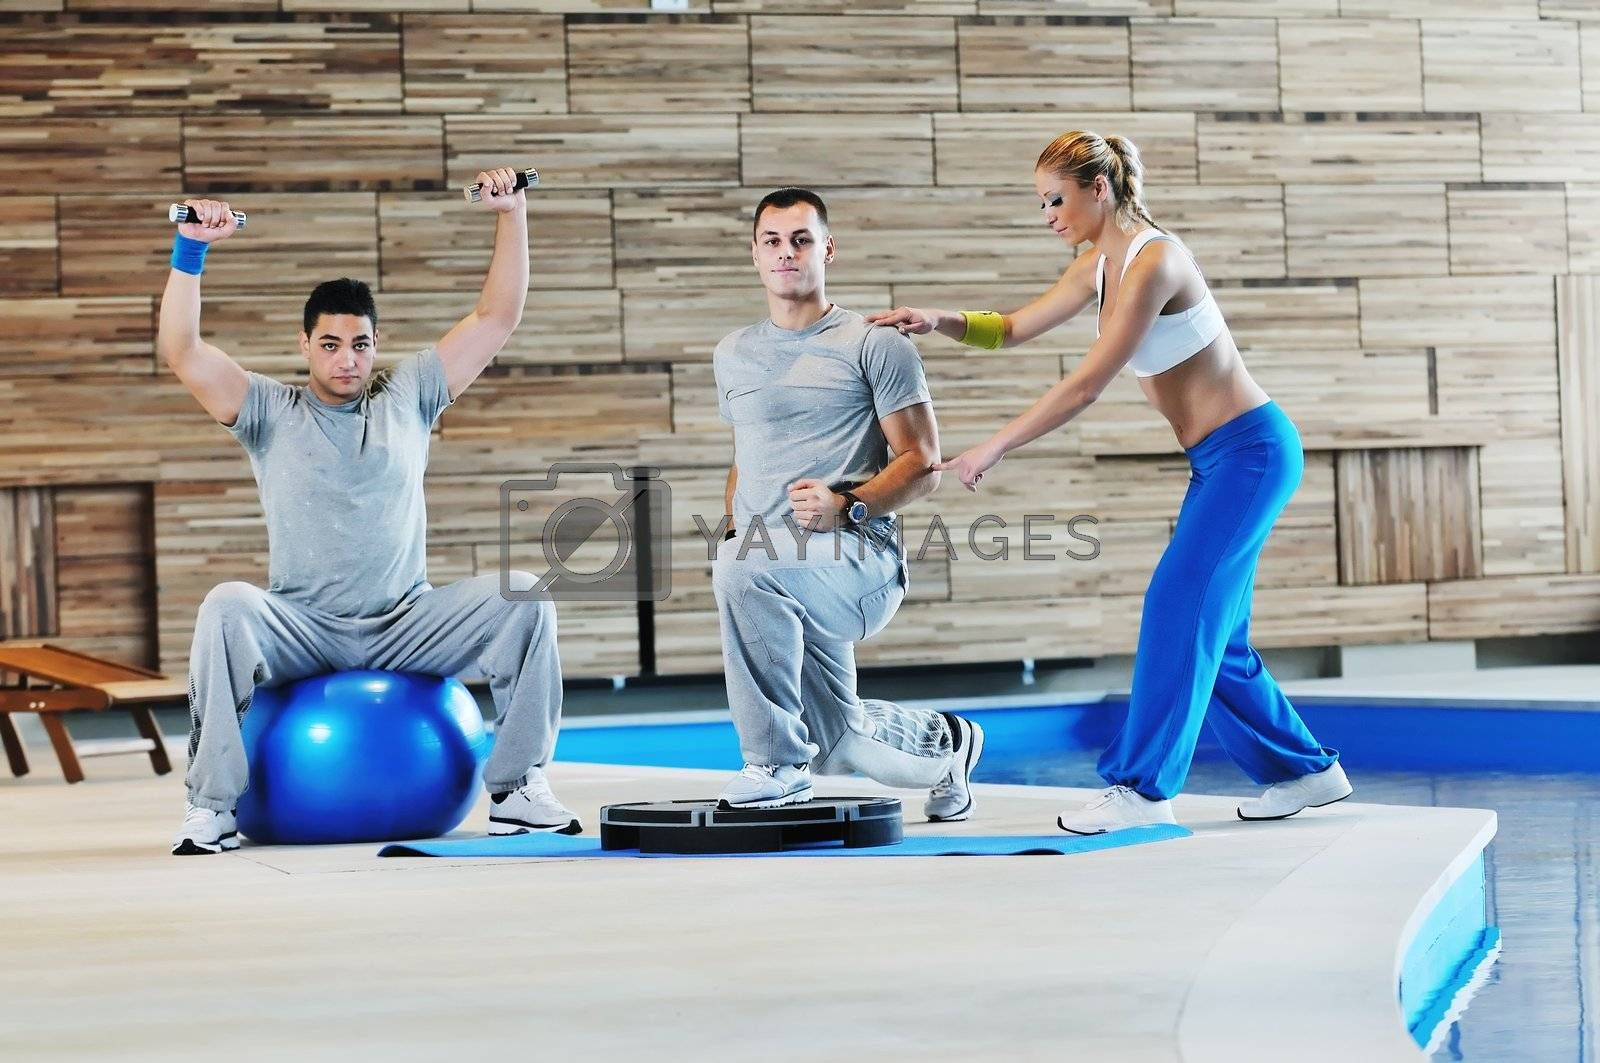 fitness personal trainer on fitness classes supporting group of people and wotrking out together in team